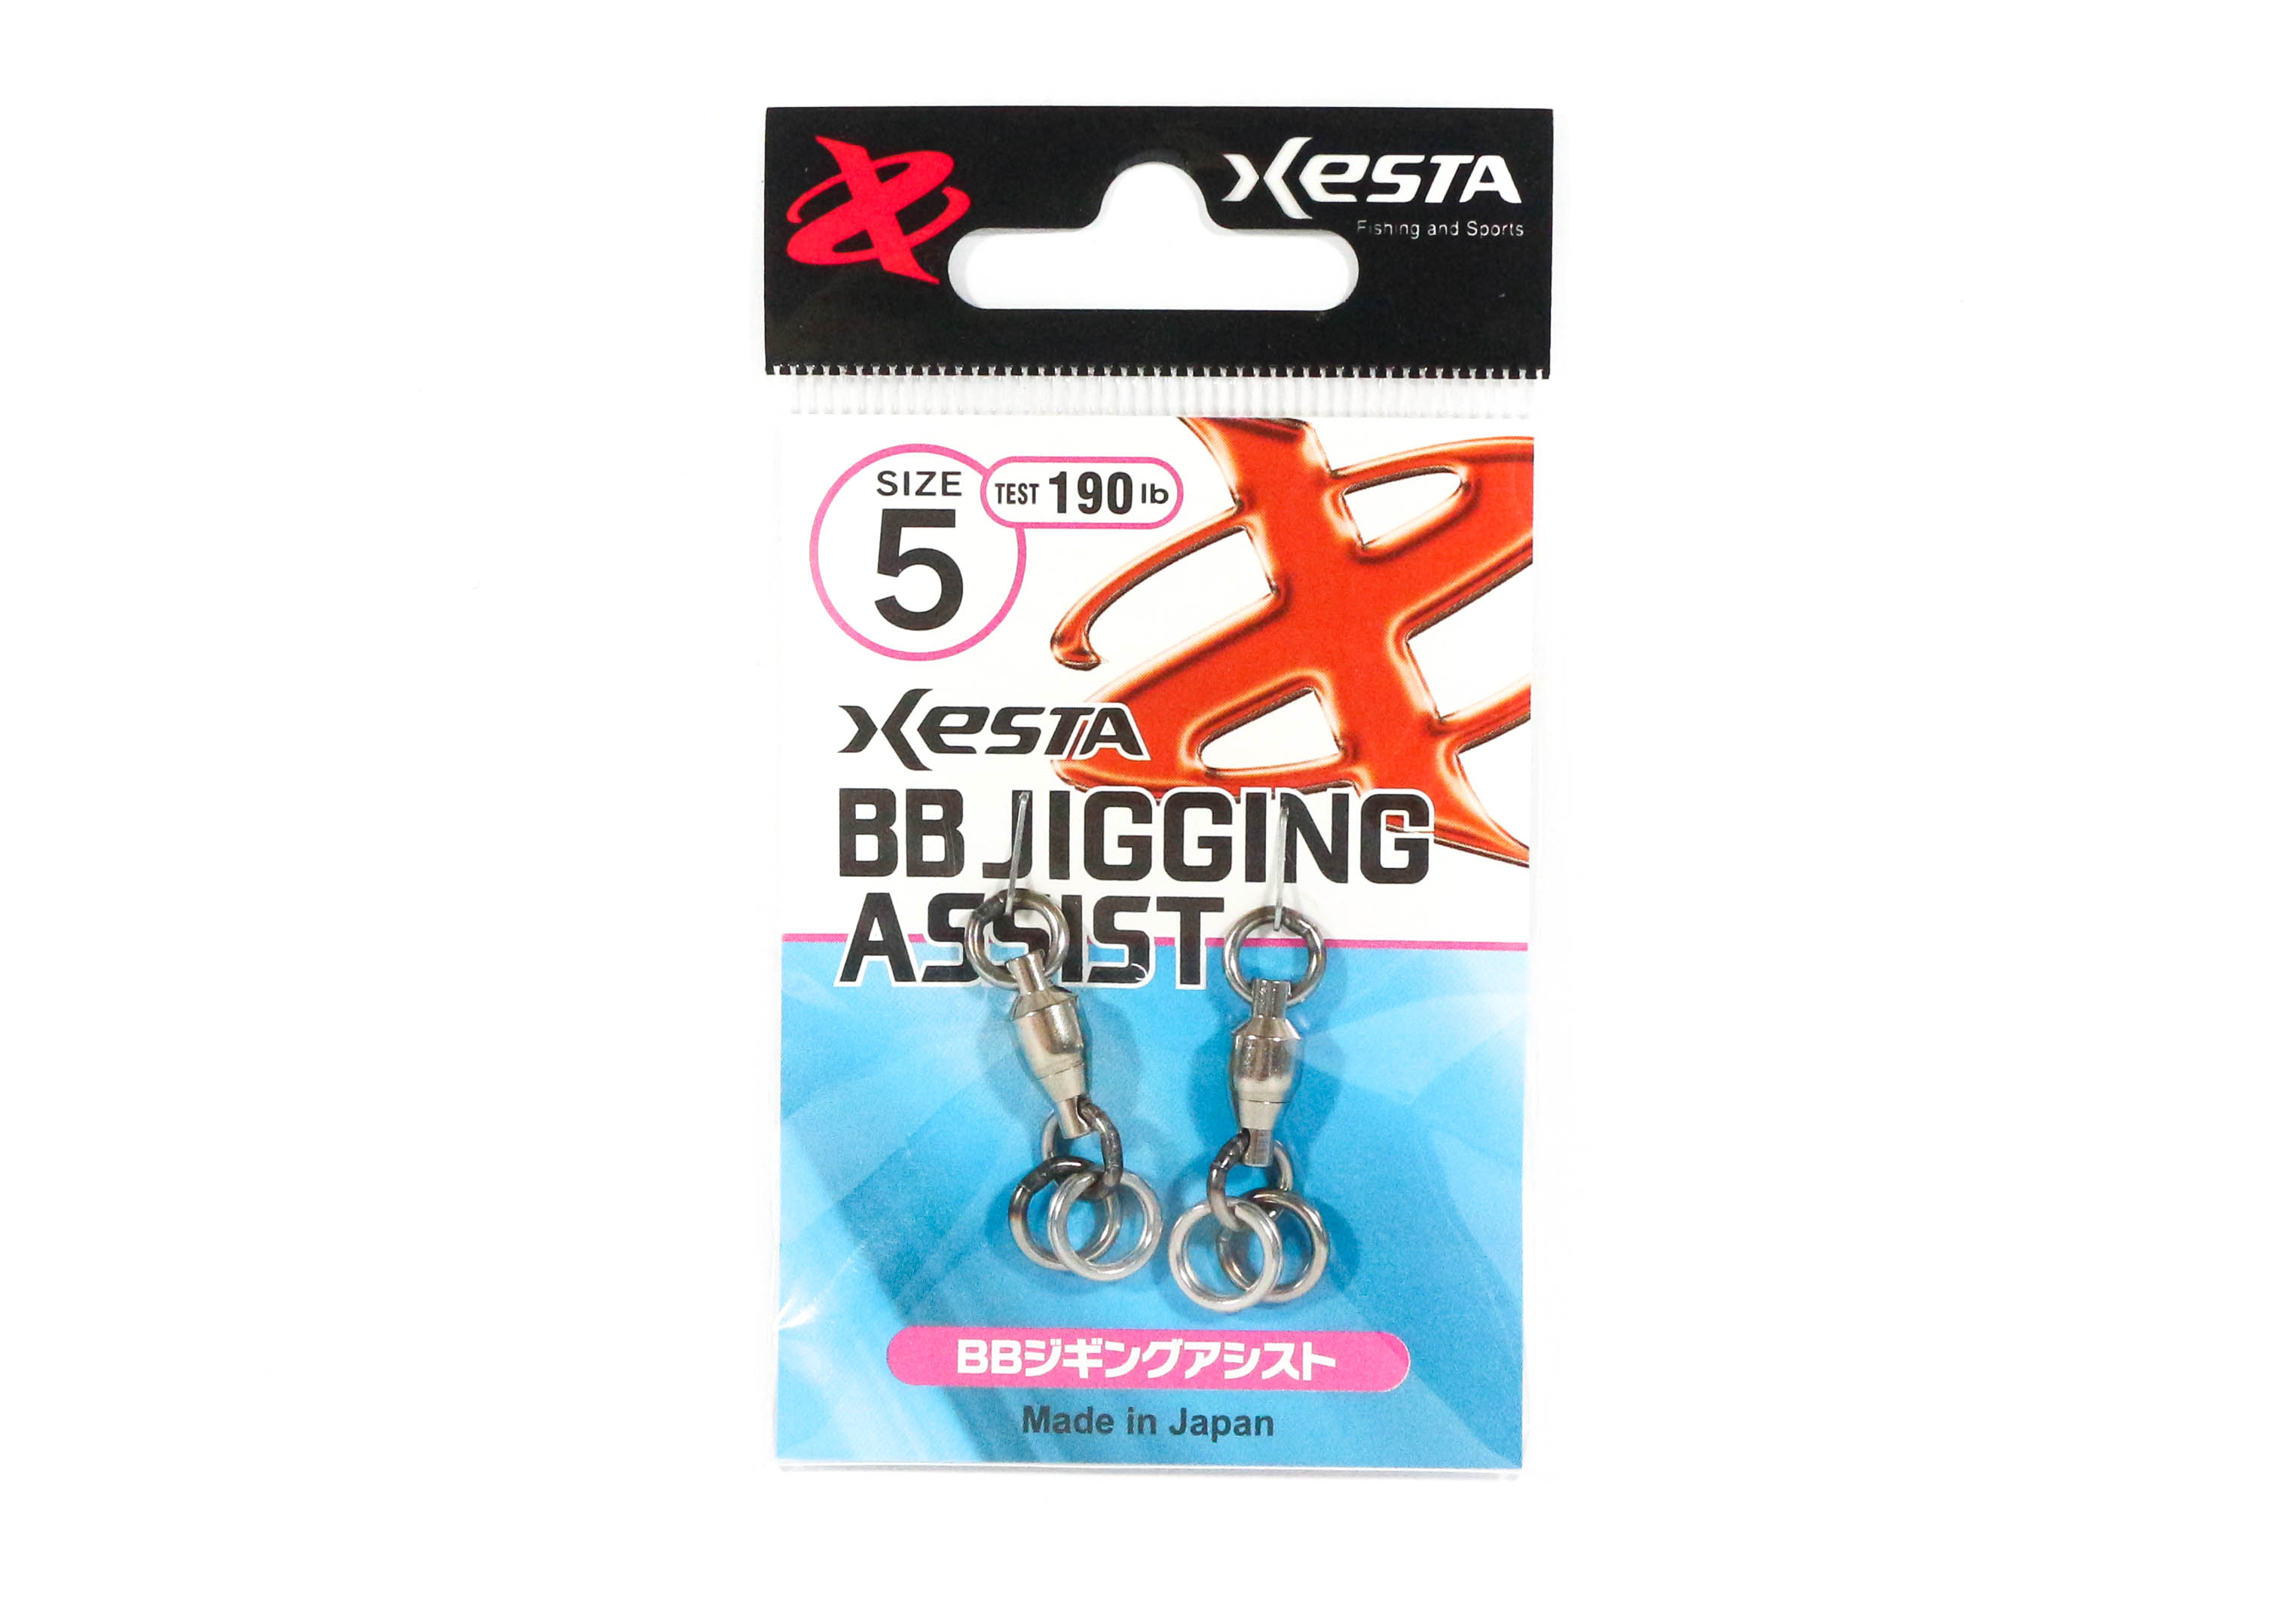 Xesta BB Jigging Assist Swivel With Solid Ring Size 5 190 lb , 2 Pieces (1867)